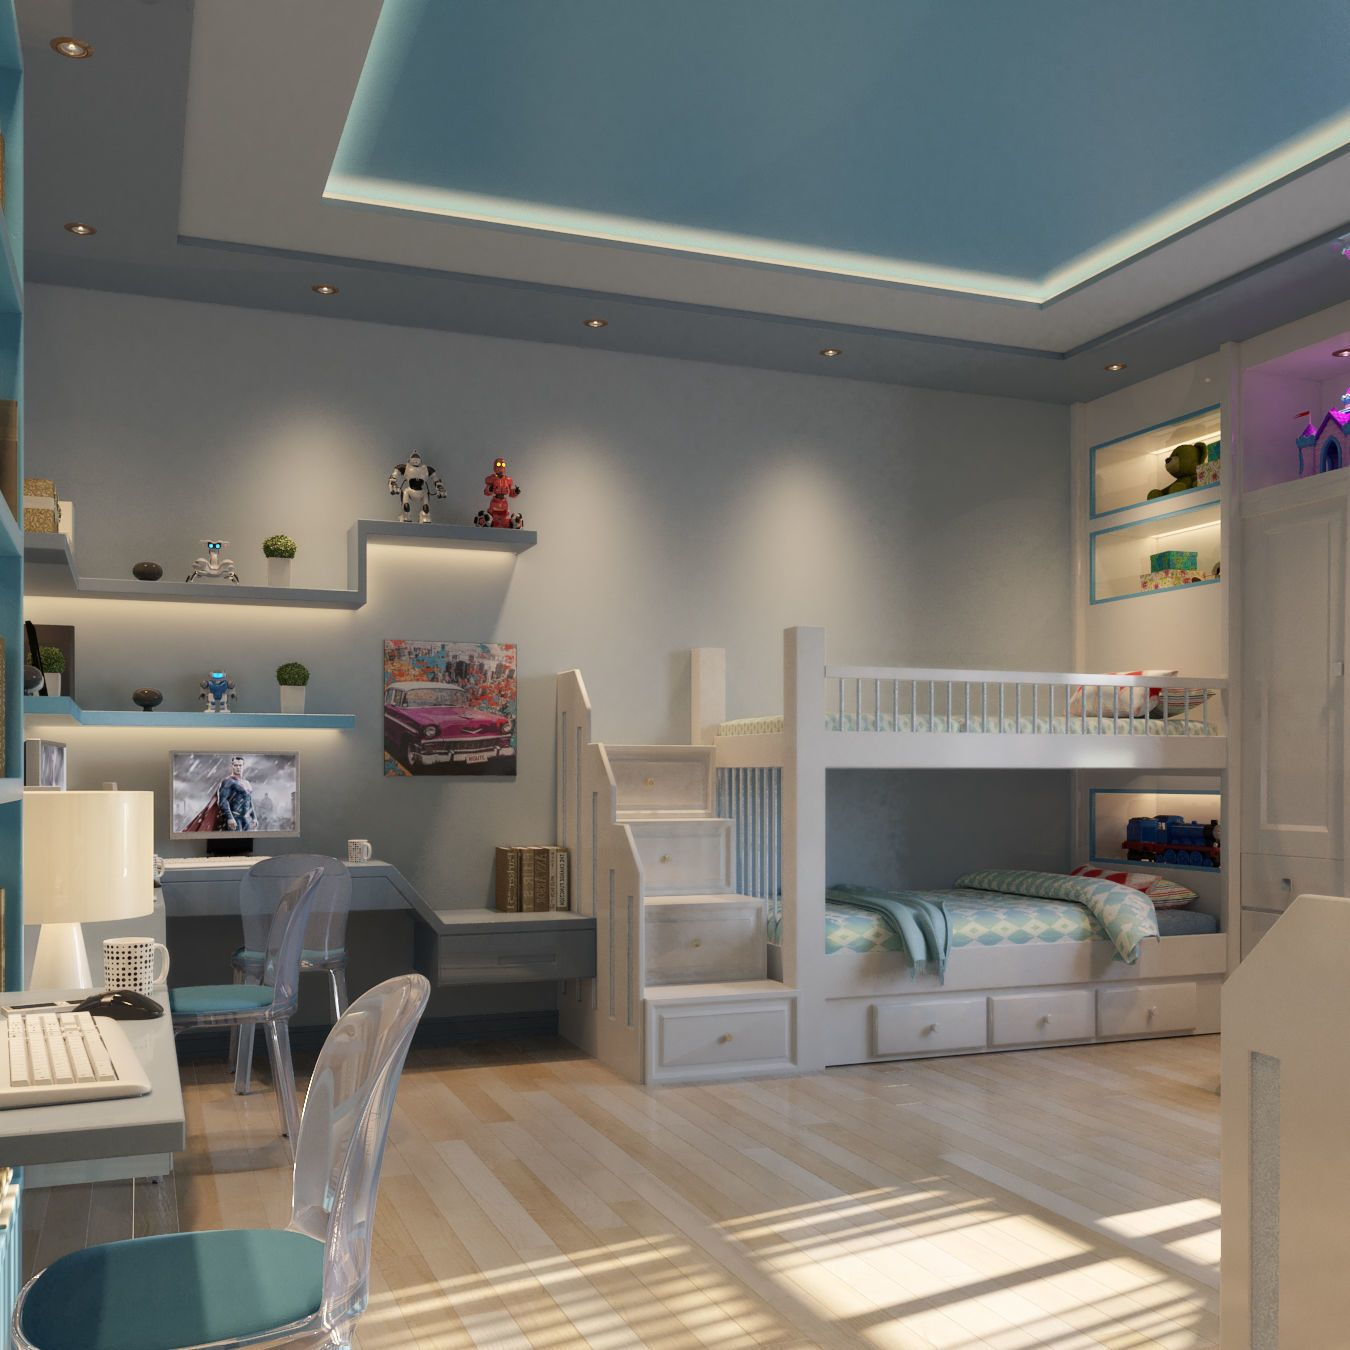 2 Boy Bedroom By Syriana 2 Boy Bedroom Modern Design Hope U Like It Vray Physical Camera Are Pr Boys Bedroom Modern Kids Bed Design Modern Bedroom Design